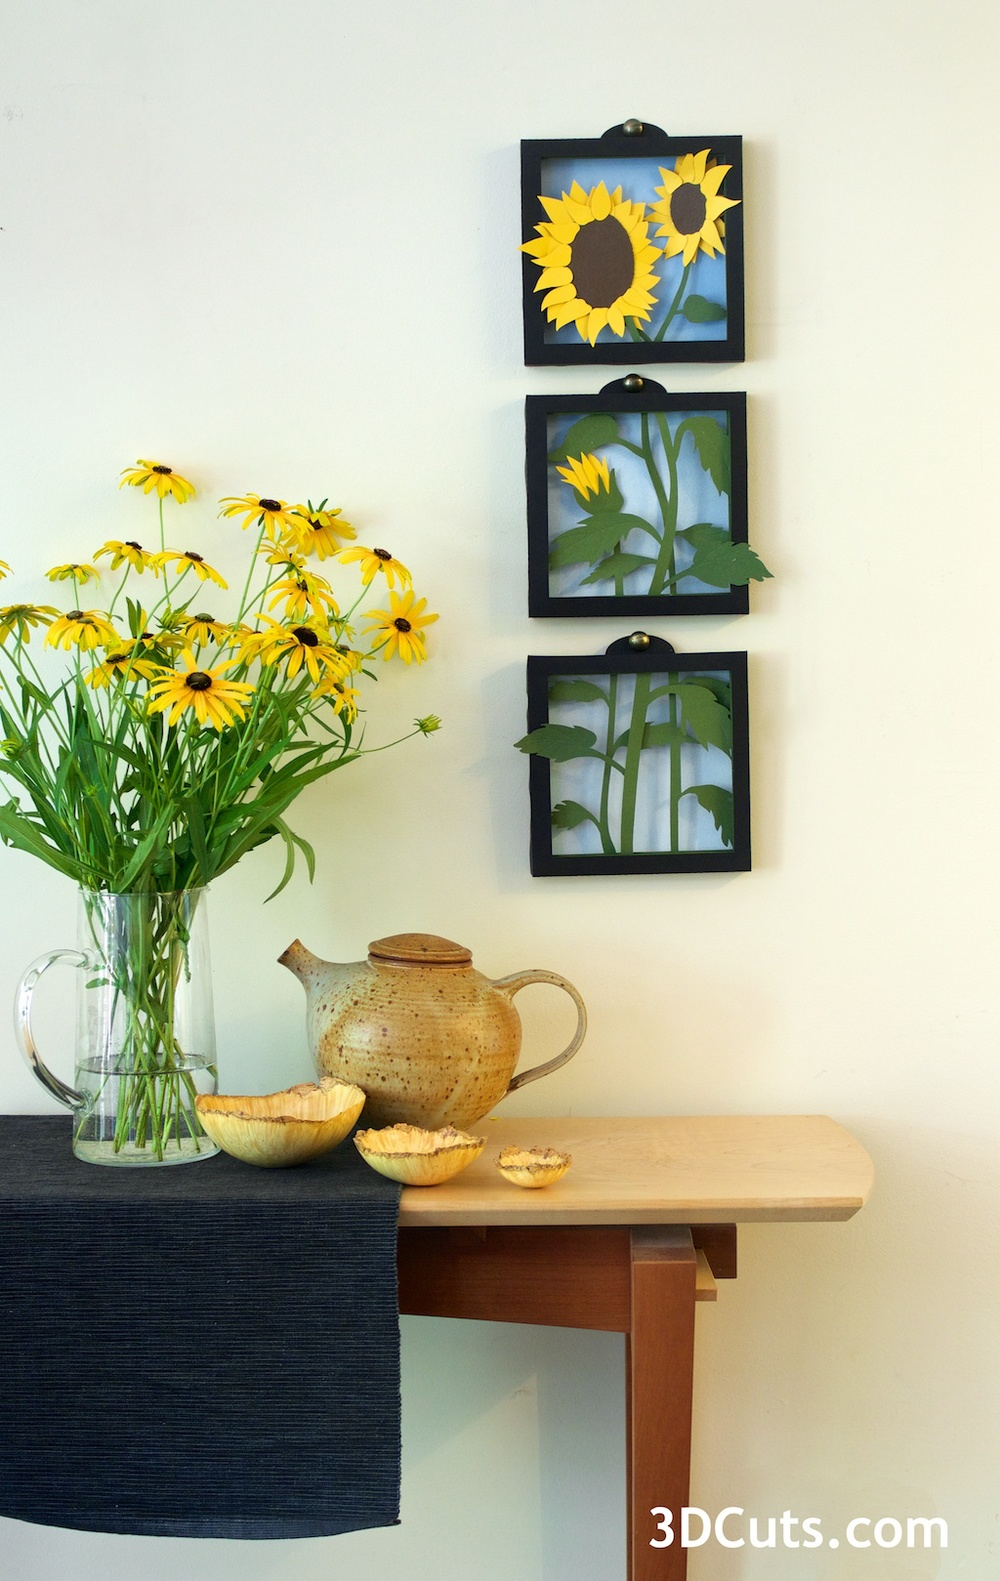 Sunflowers in Paper - room setting